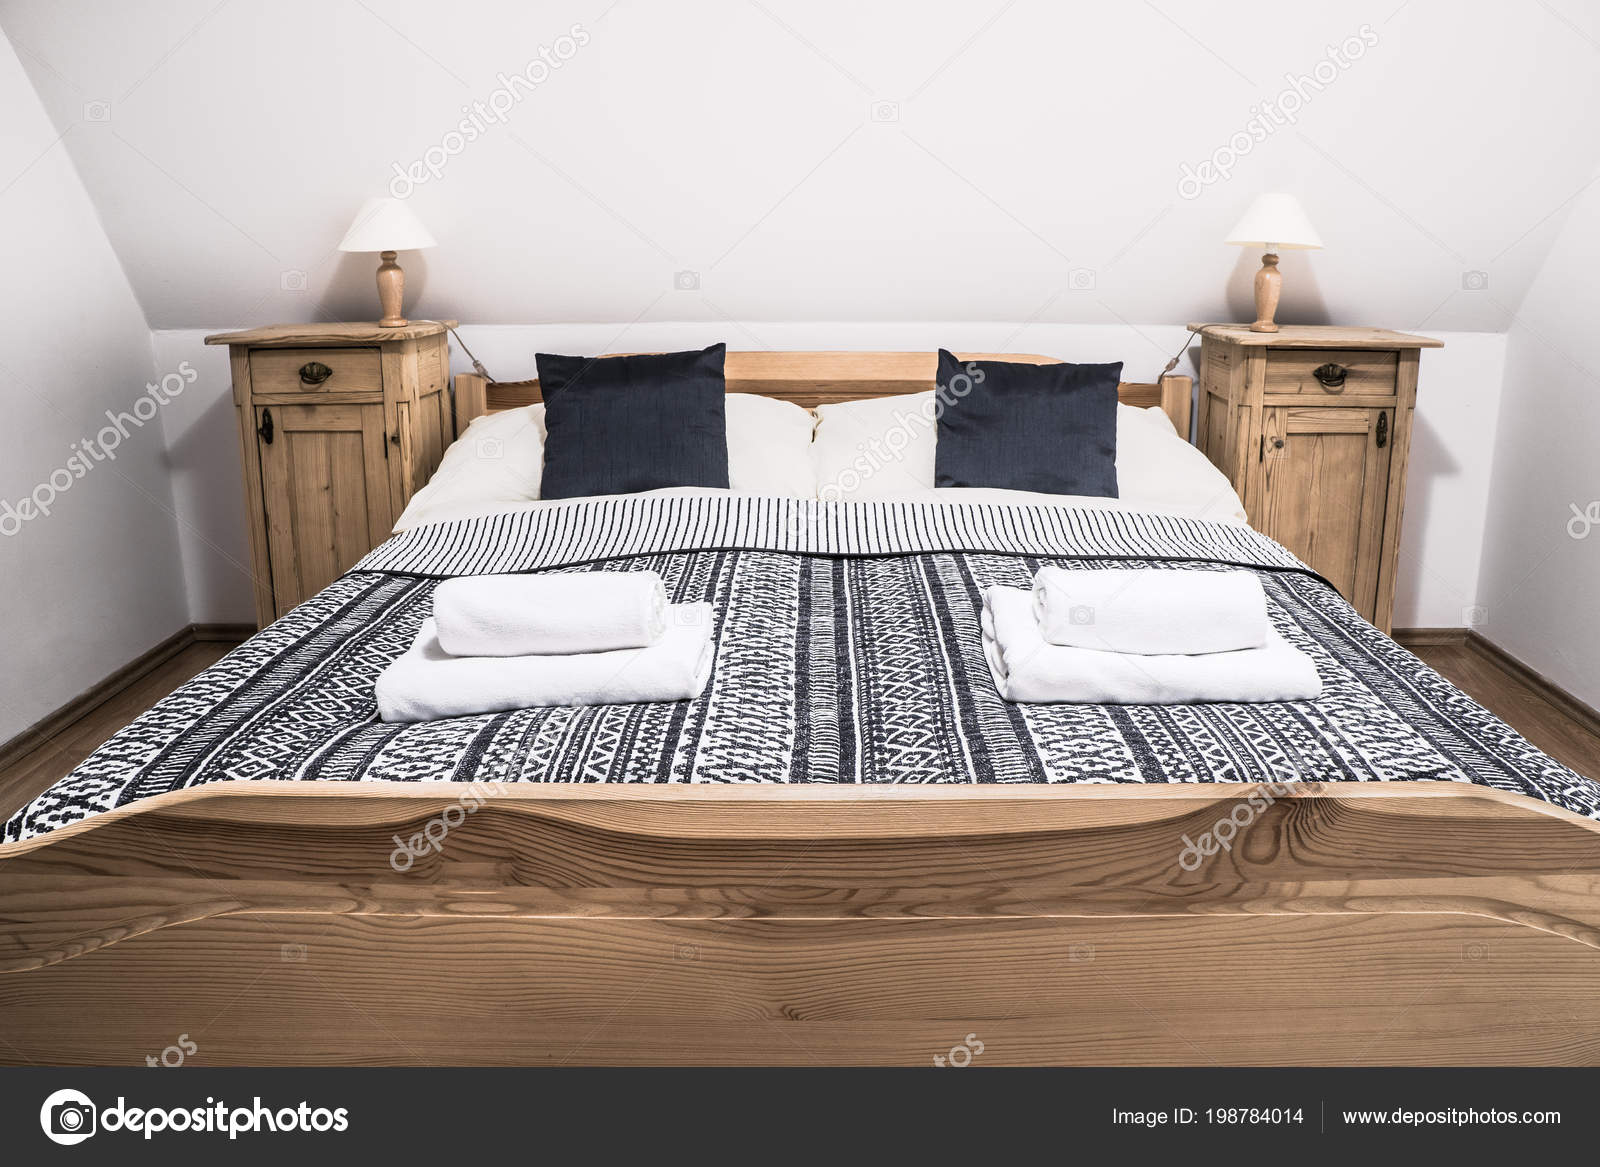 Rustic Wooden Bed Cozy Rural Hotel Room Double Bed Bedside Stock Photo Image By C Marvlc 198784014